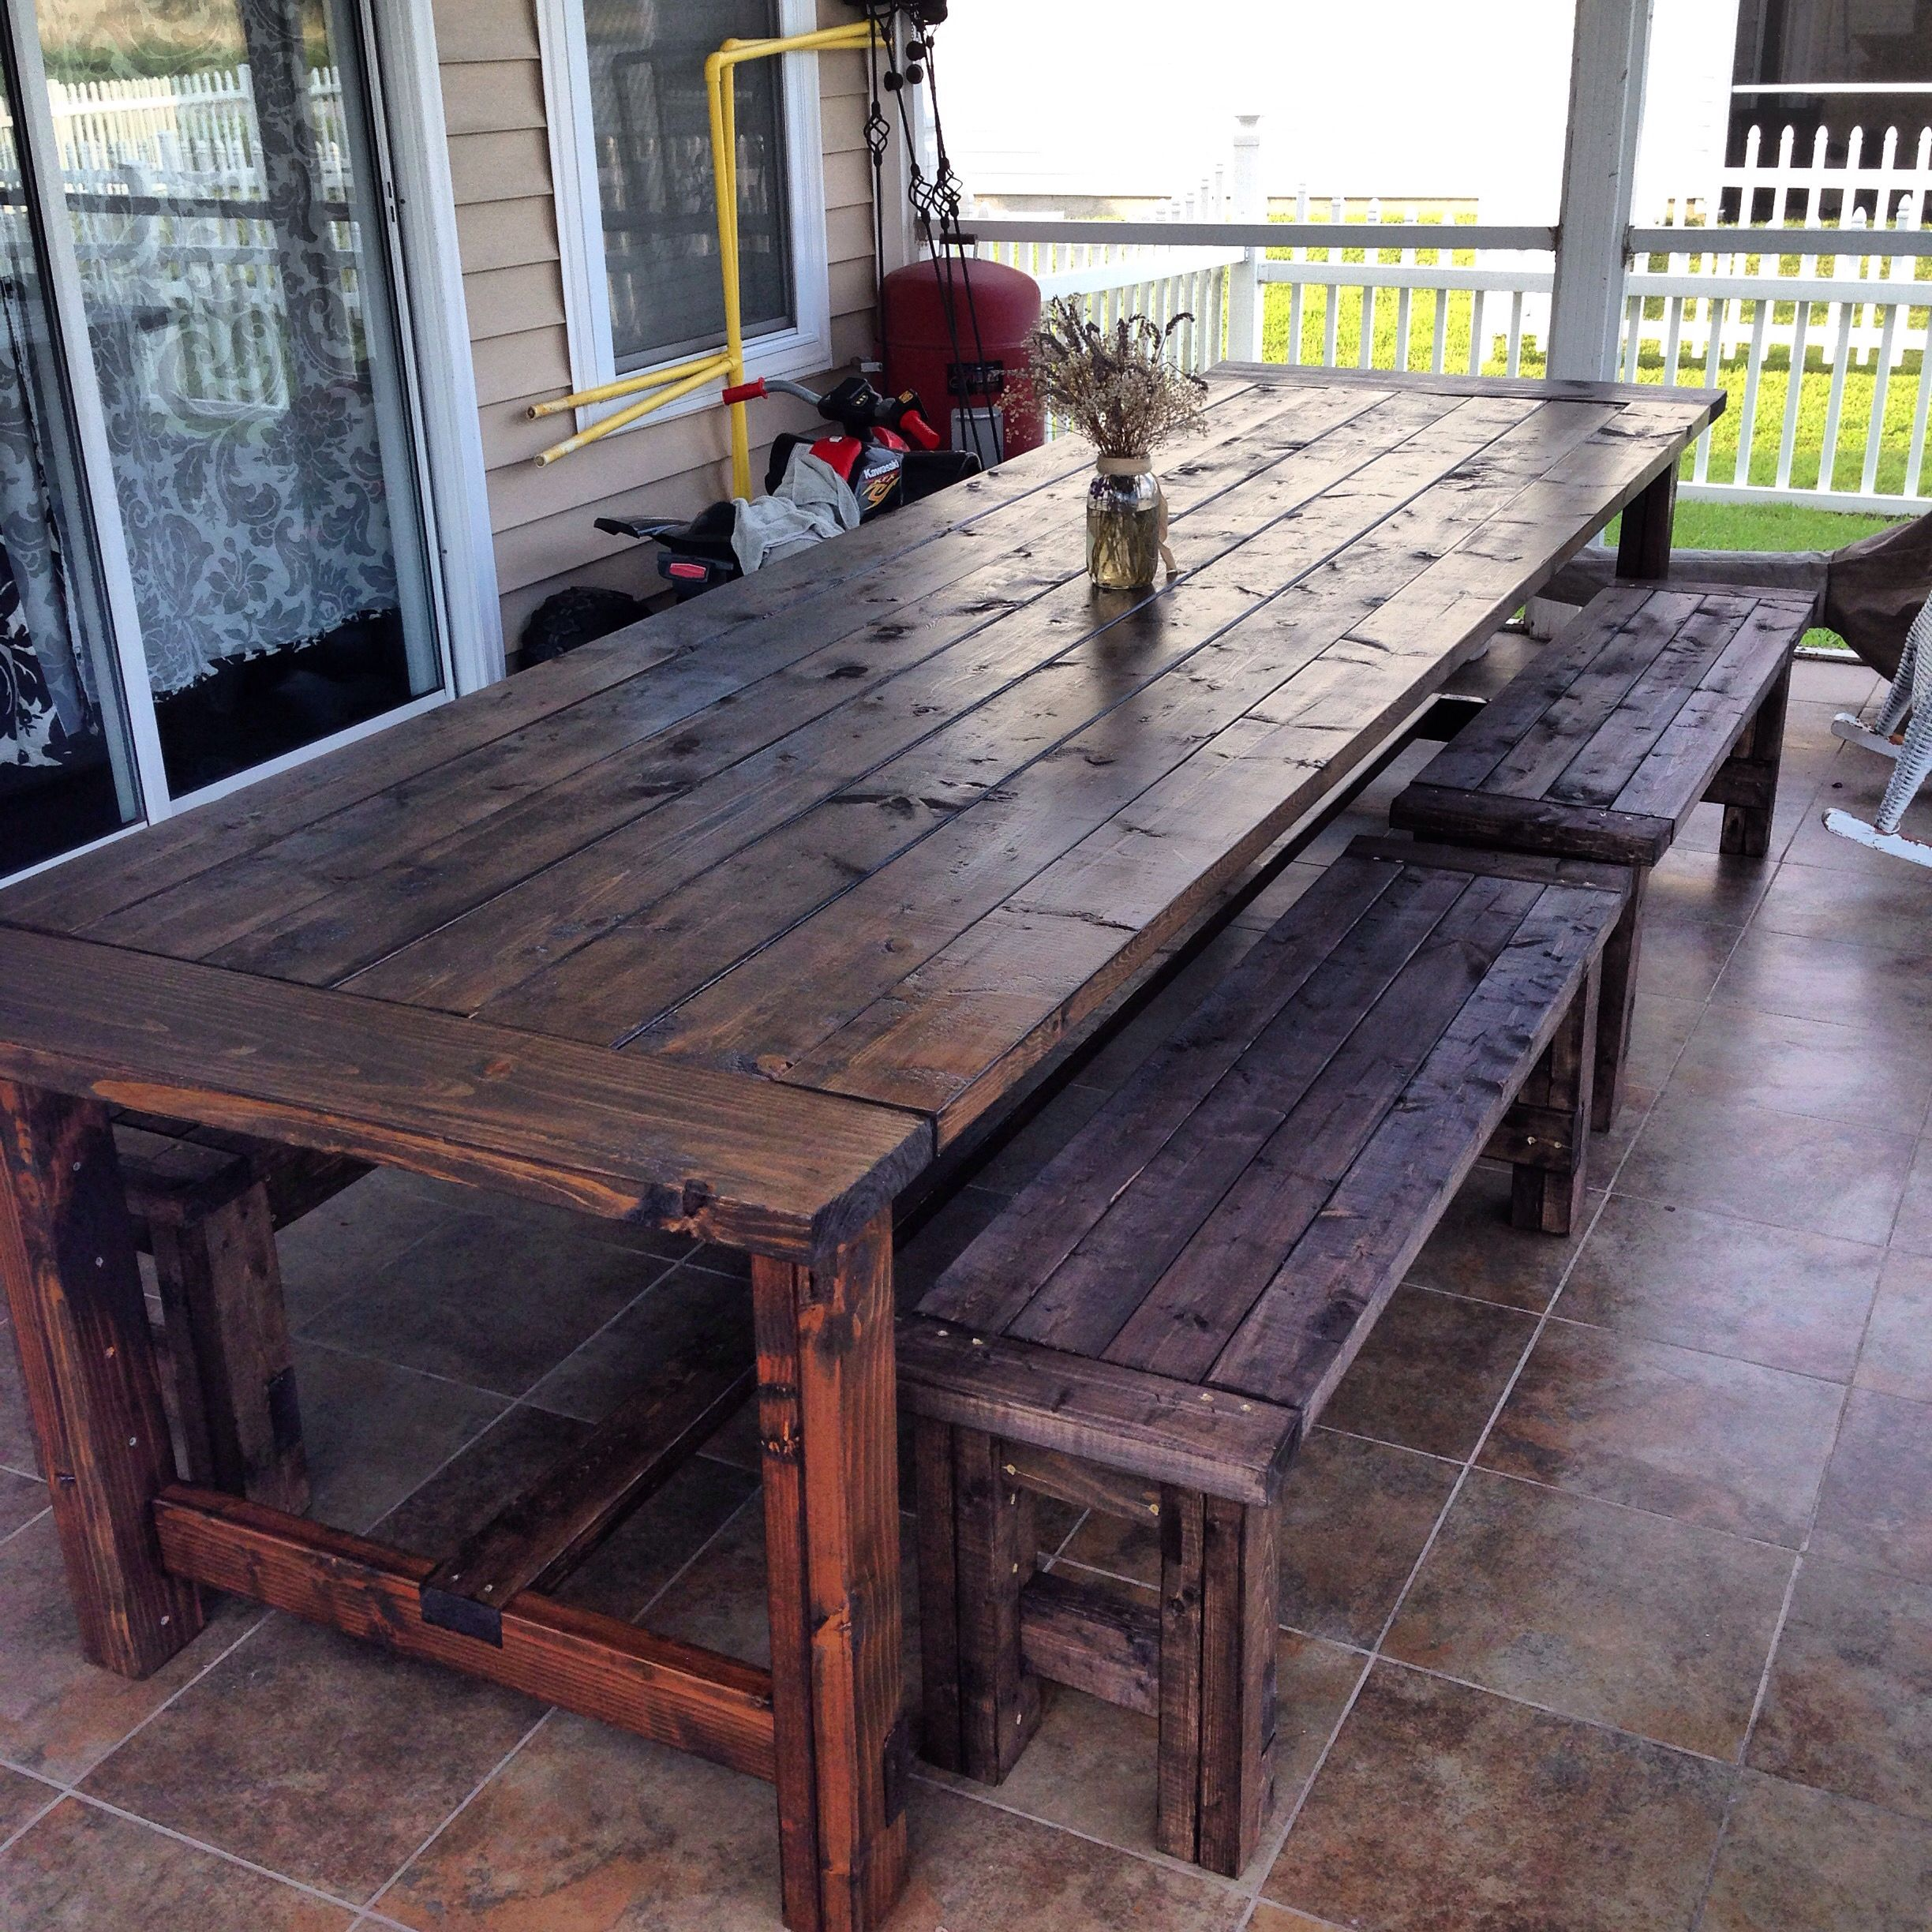 Outdoor Table With Benches Over 11ft Long Outdoor Wood Table